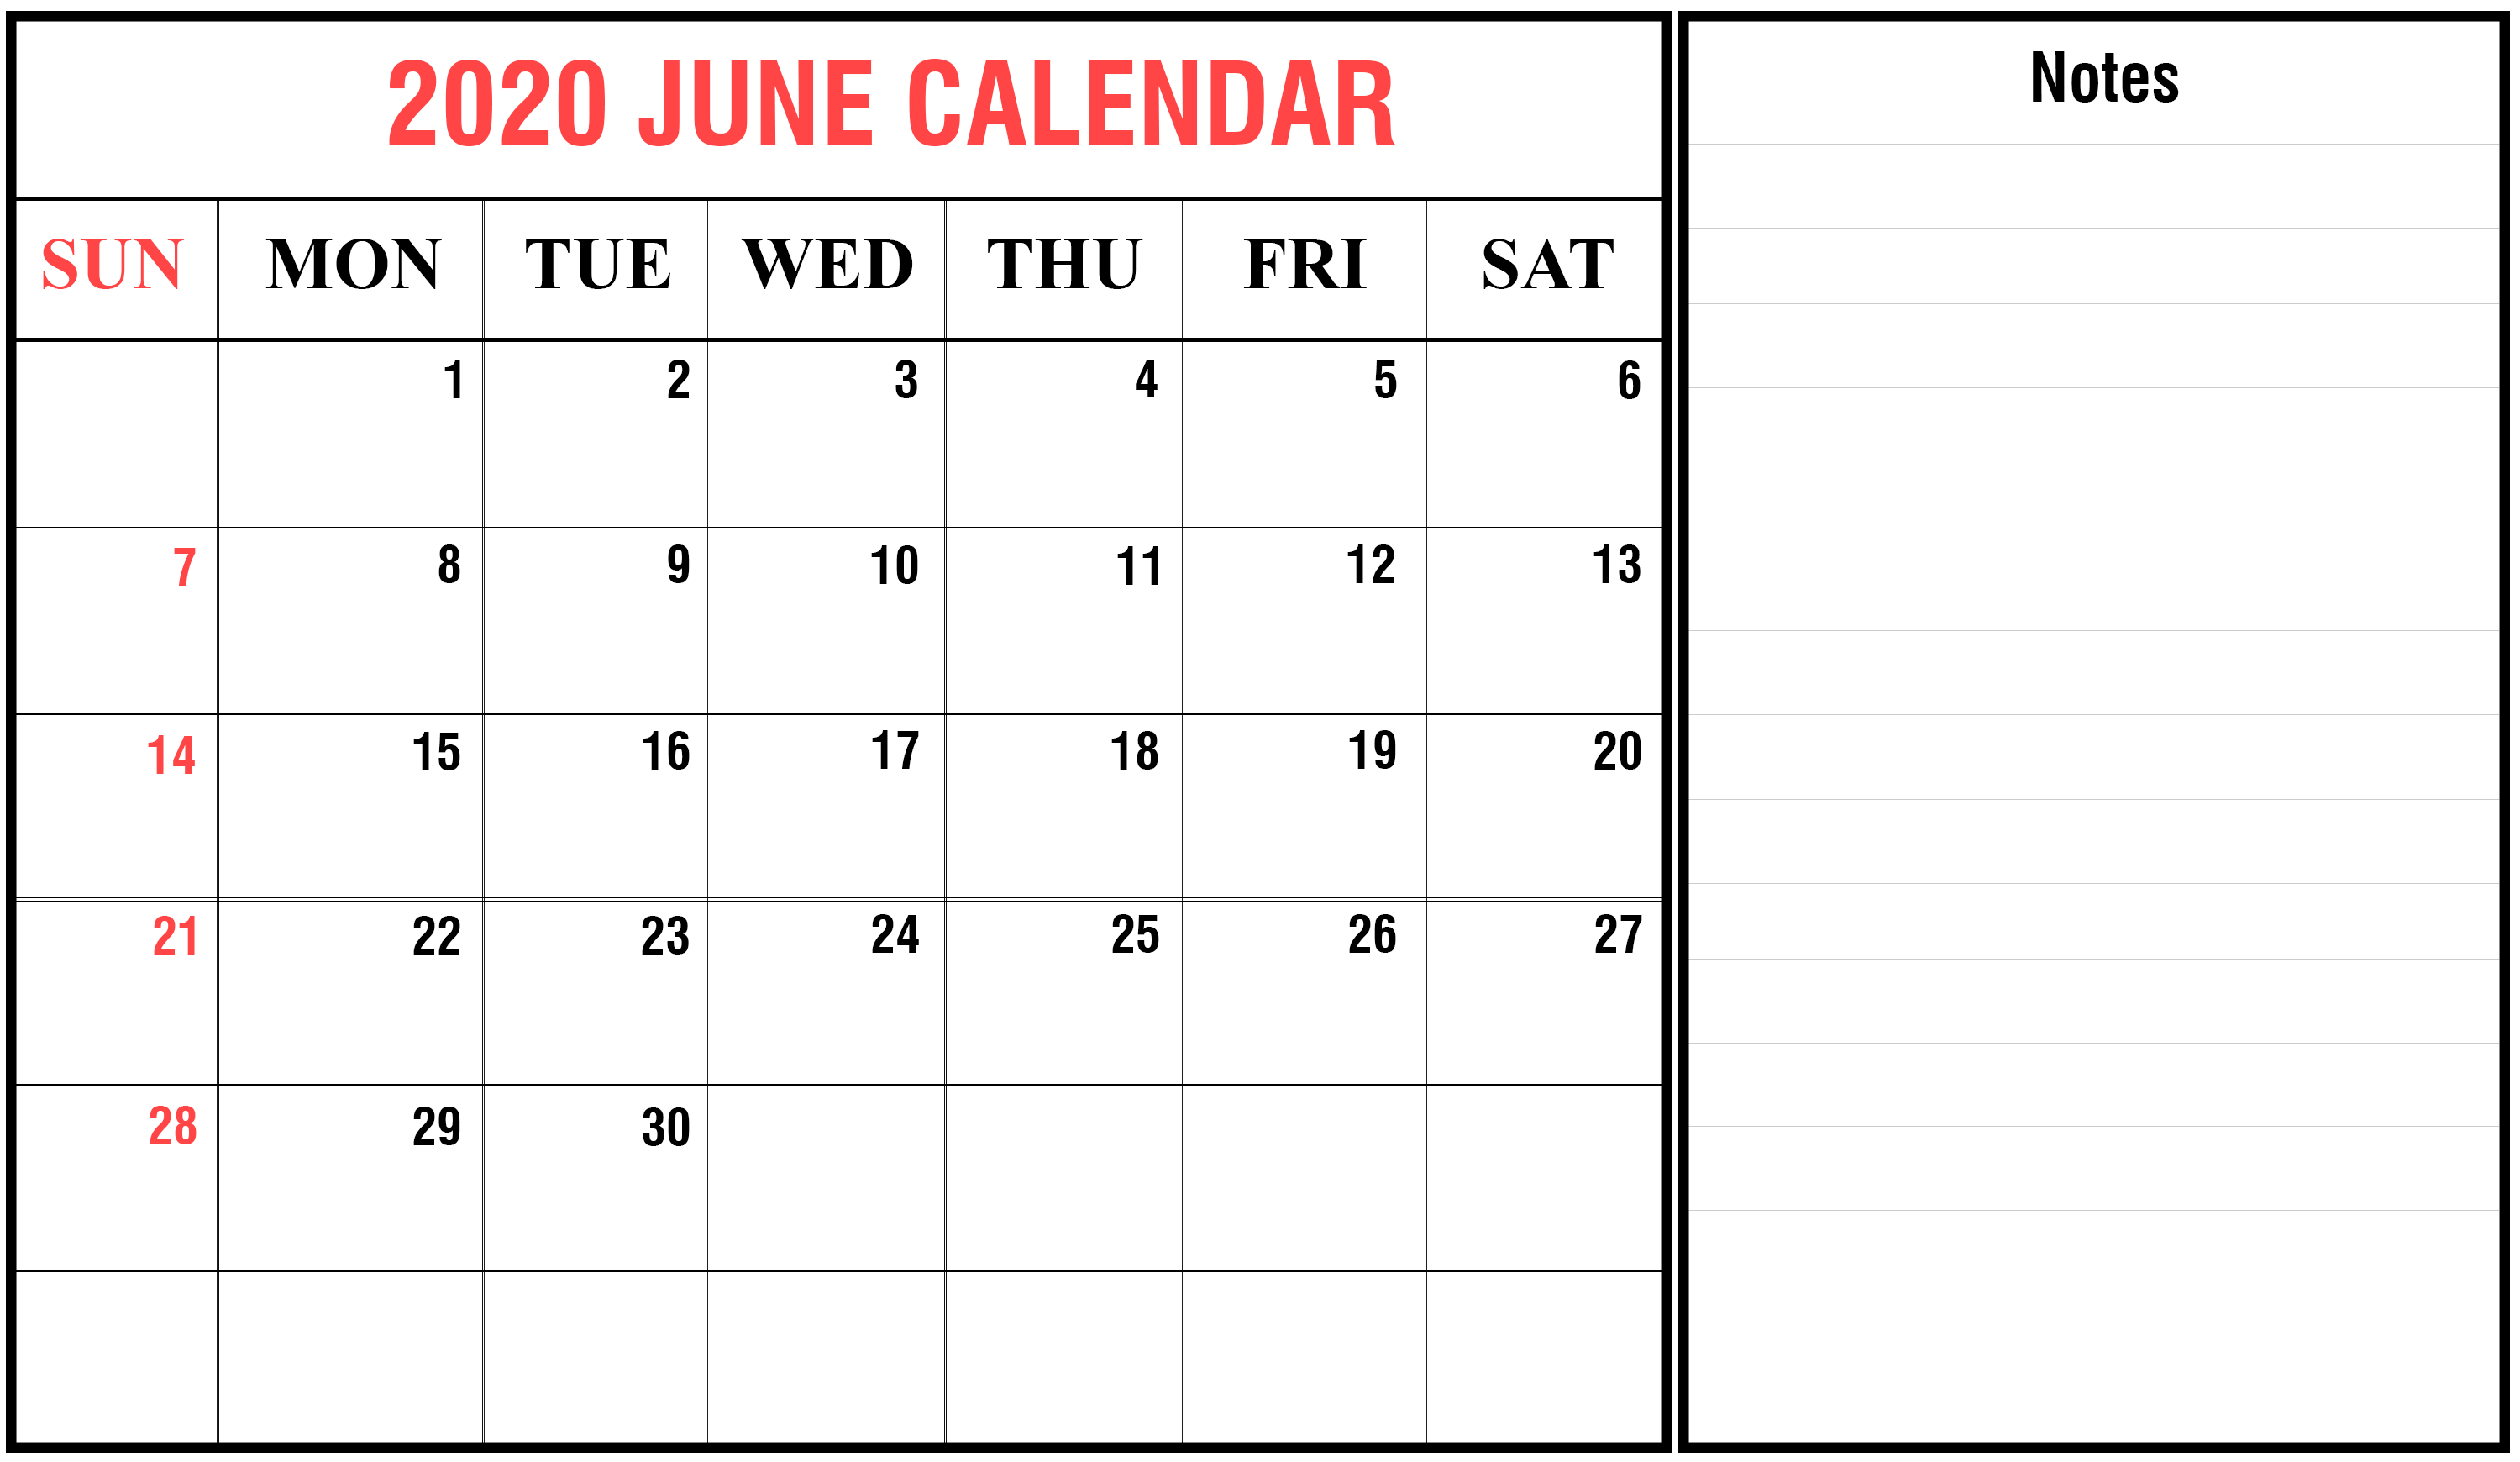 June 2020 Fillable Calendar with Large Space Notes